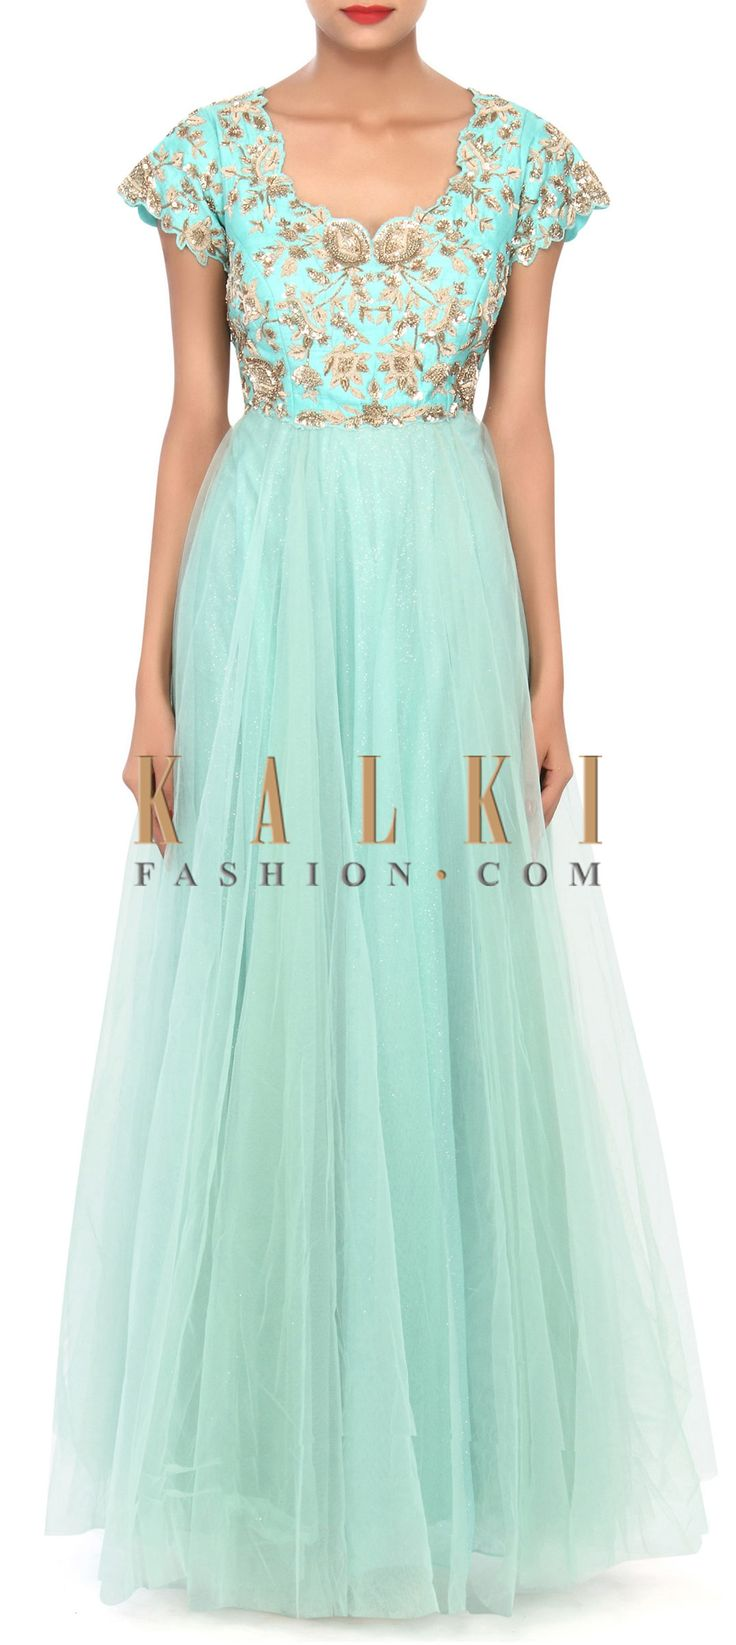 Buy Online from the link below. We ship worldwide (Free Shipping over US$100) Price- $429.00 Click Anywhere to Tag http://www.kalkifashion.com/sea-green-anarkali-suit-embellished-in-zardosi-and-sequin-embroidery-only-on-kalki.html